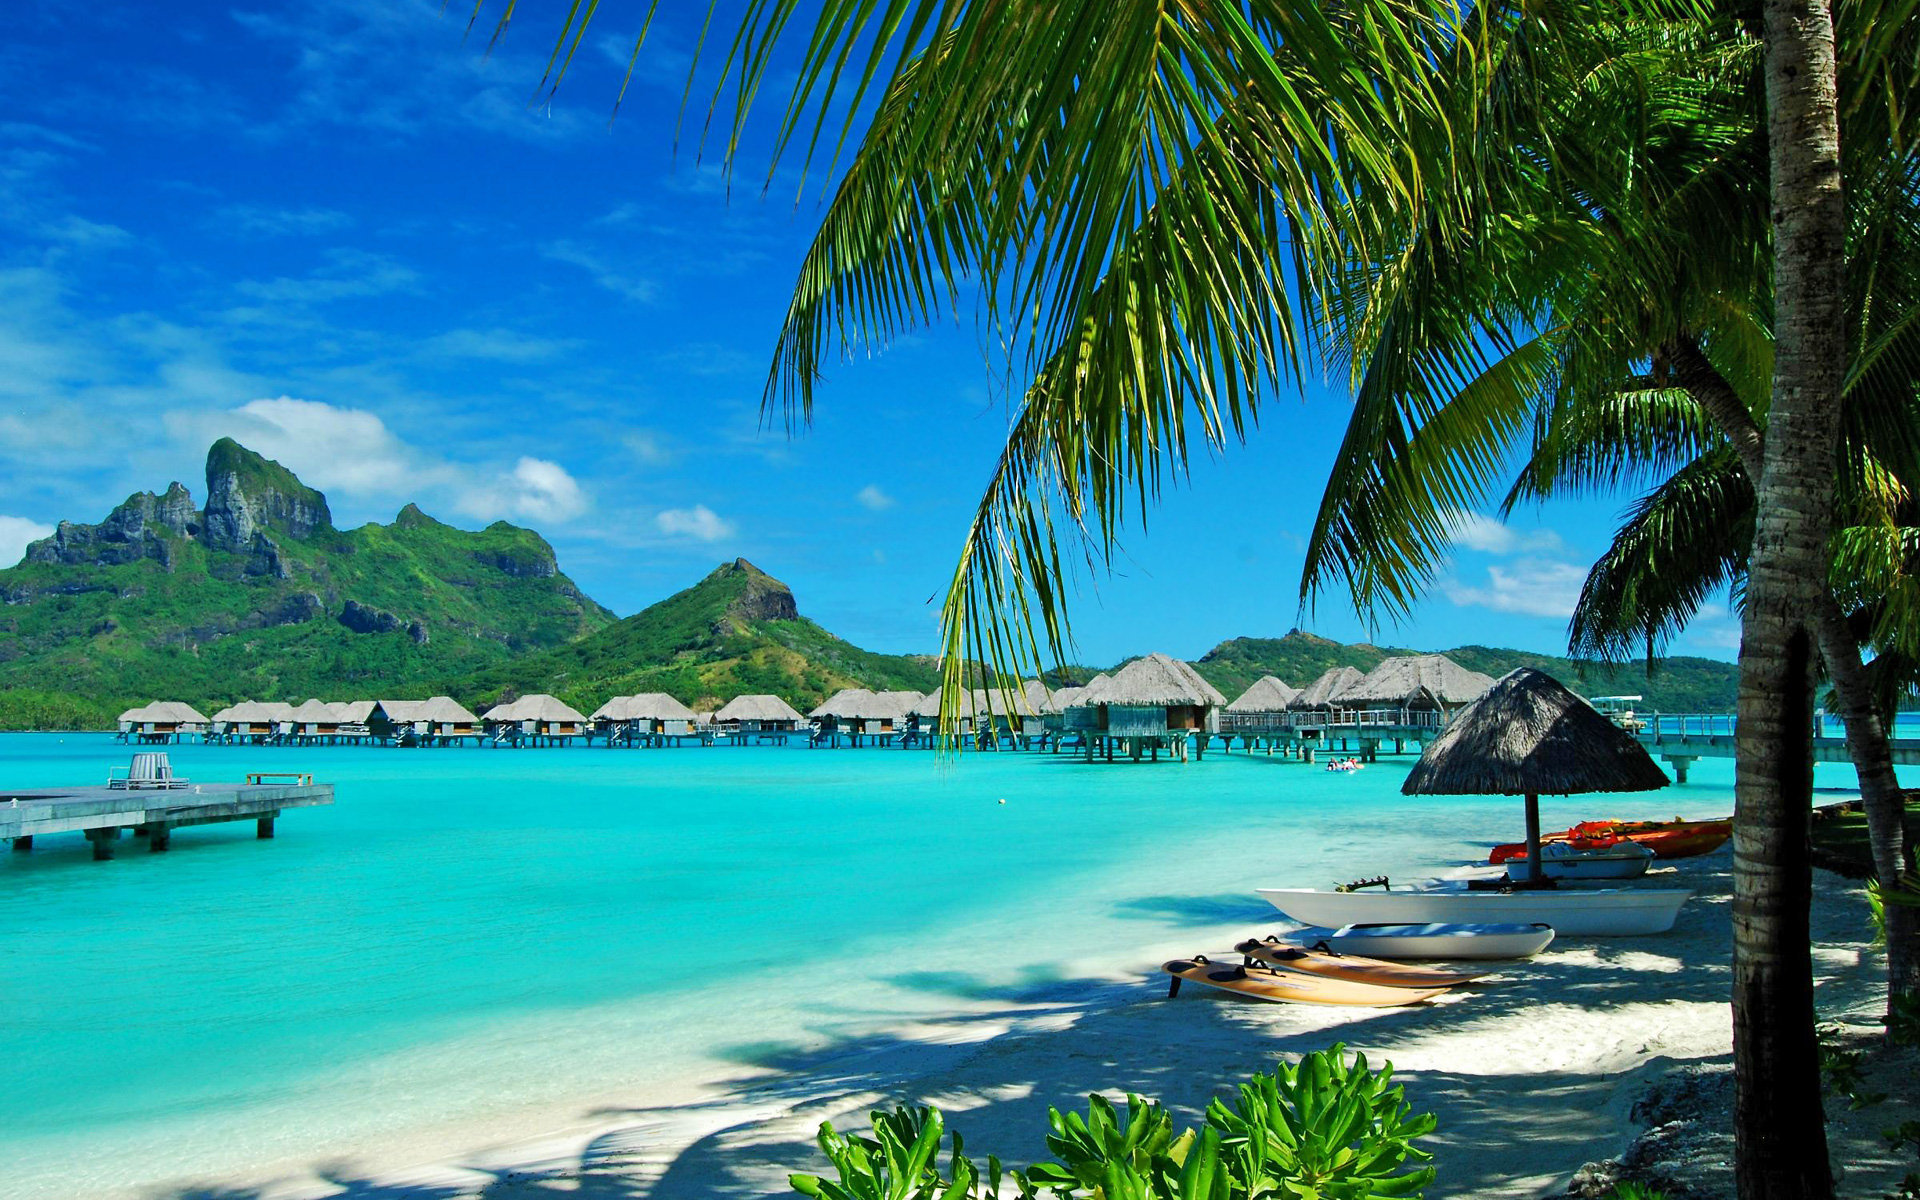 Beach resort, Bora Bora, French Polynesia